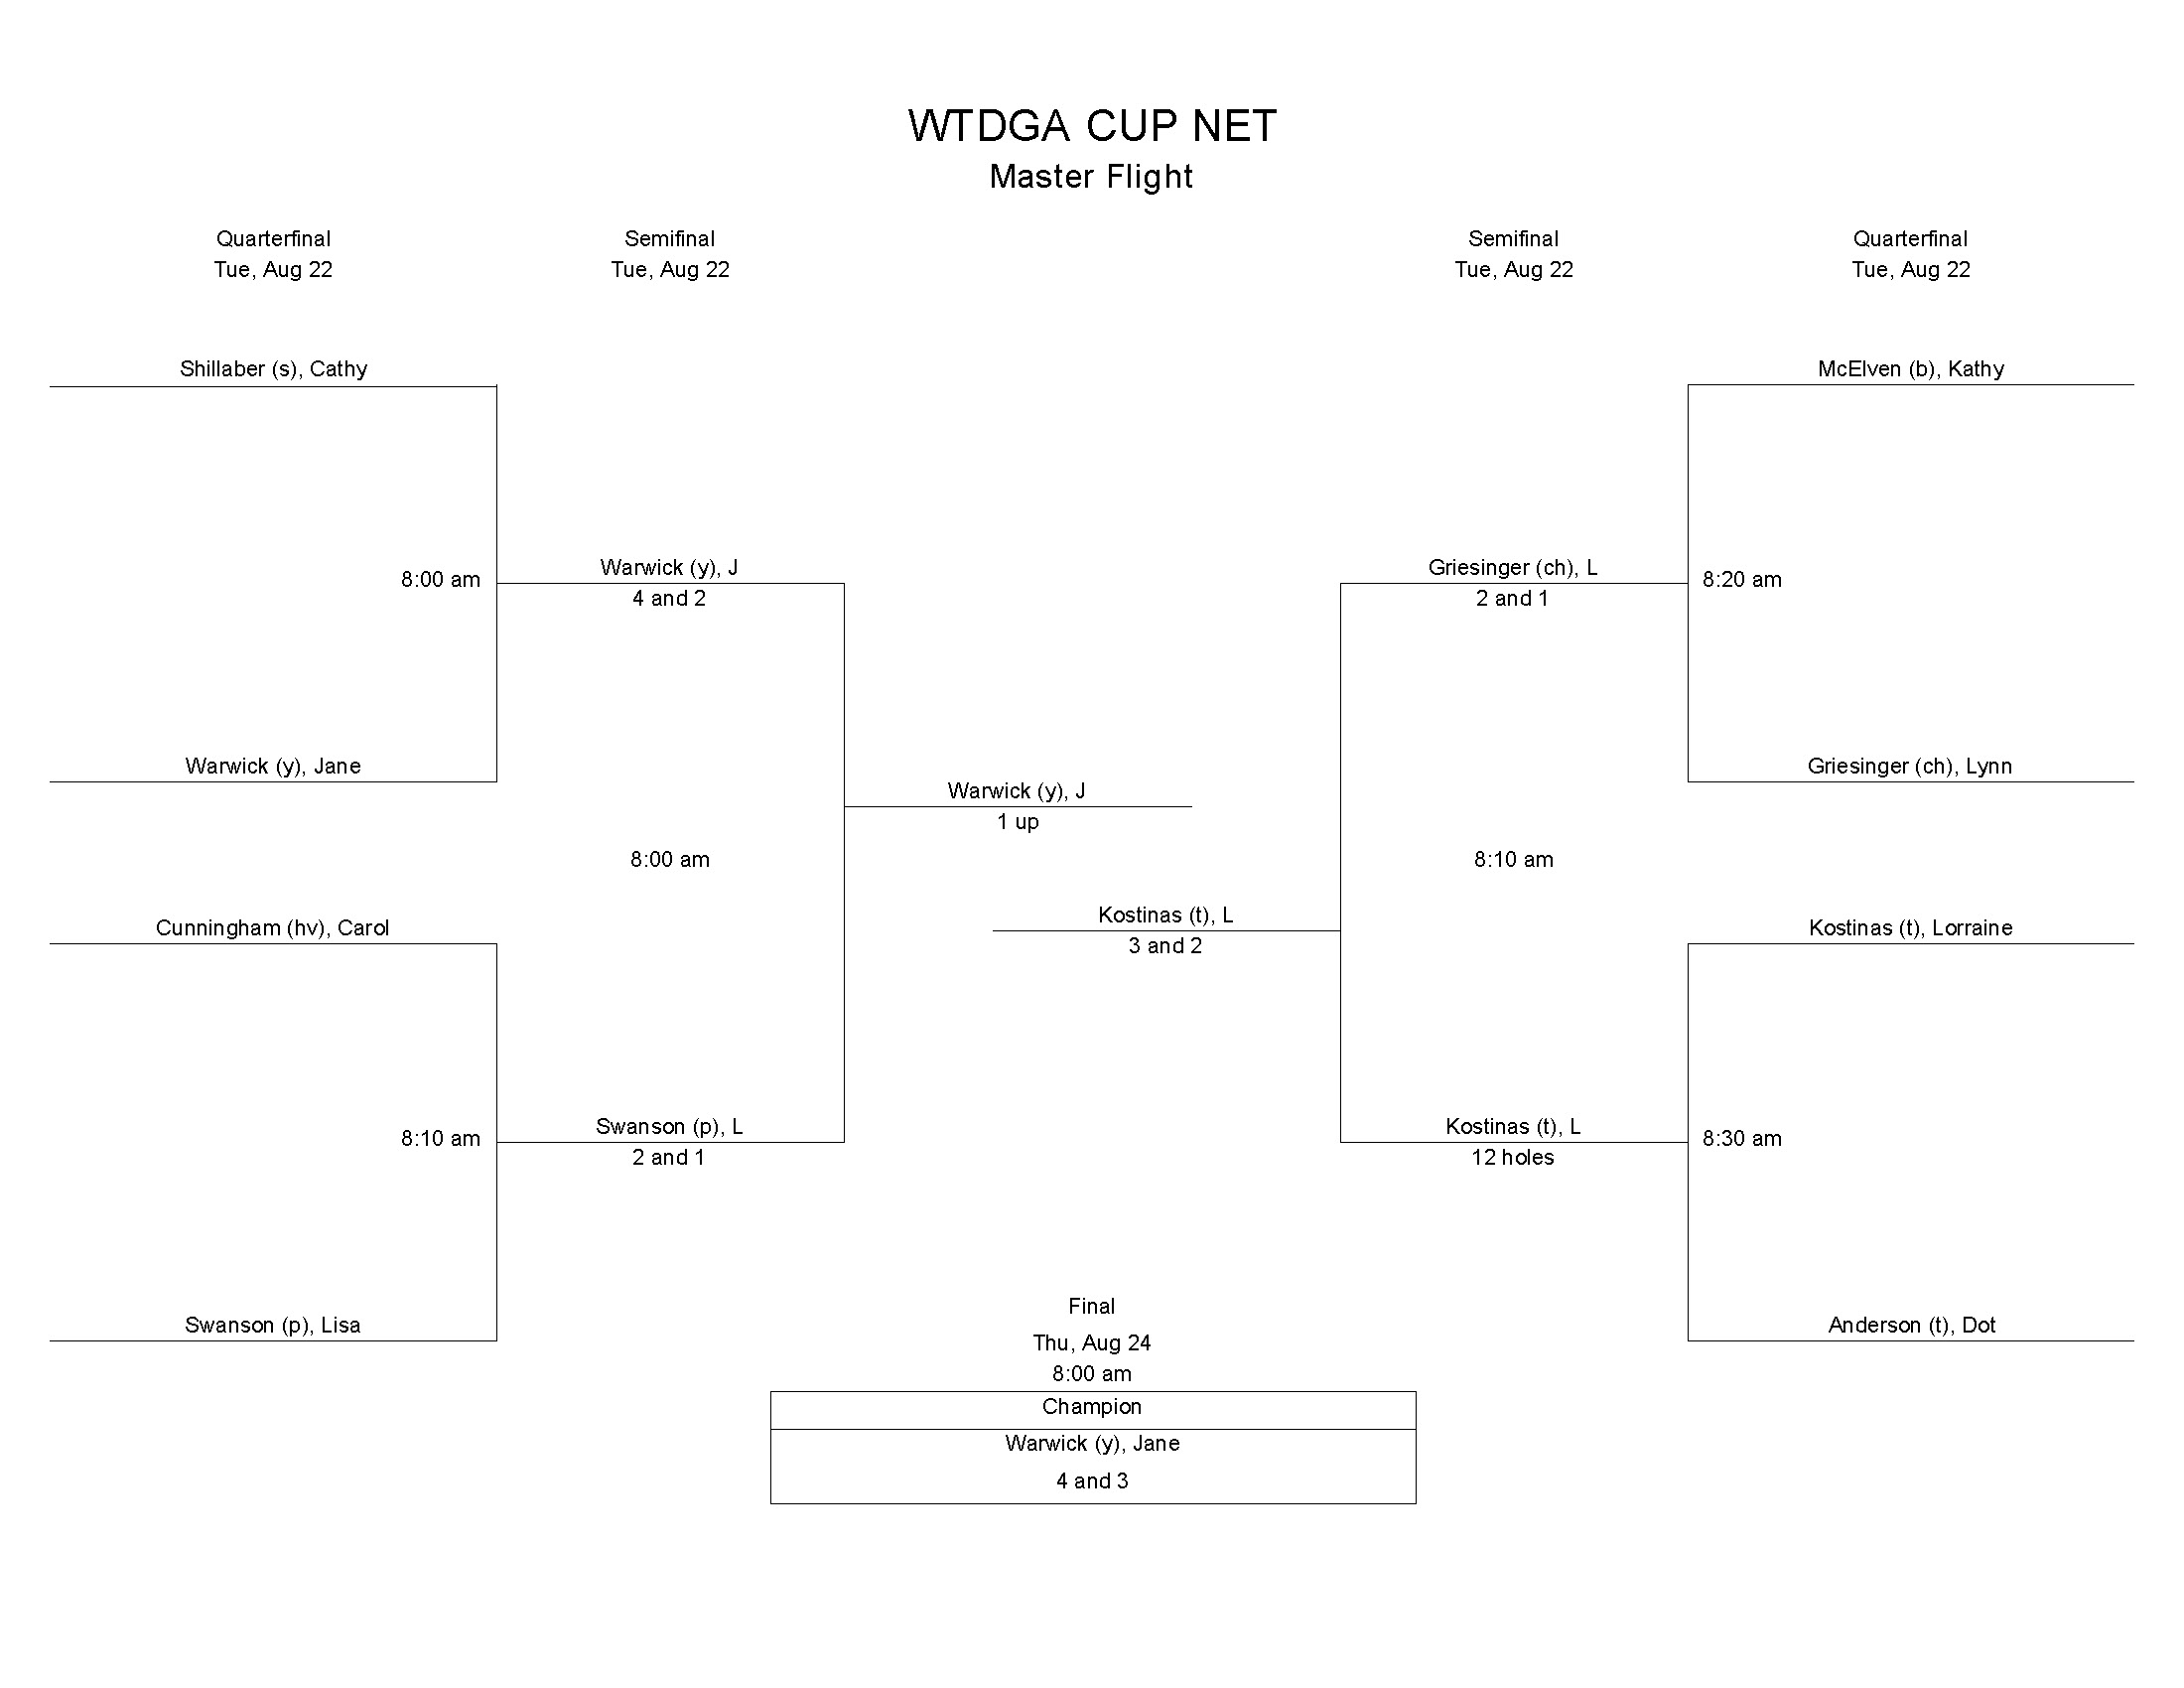 2017 WTDGA Cup Match Play Tree Final_Page_2.jpg